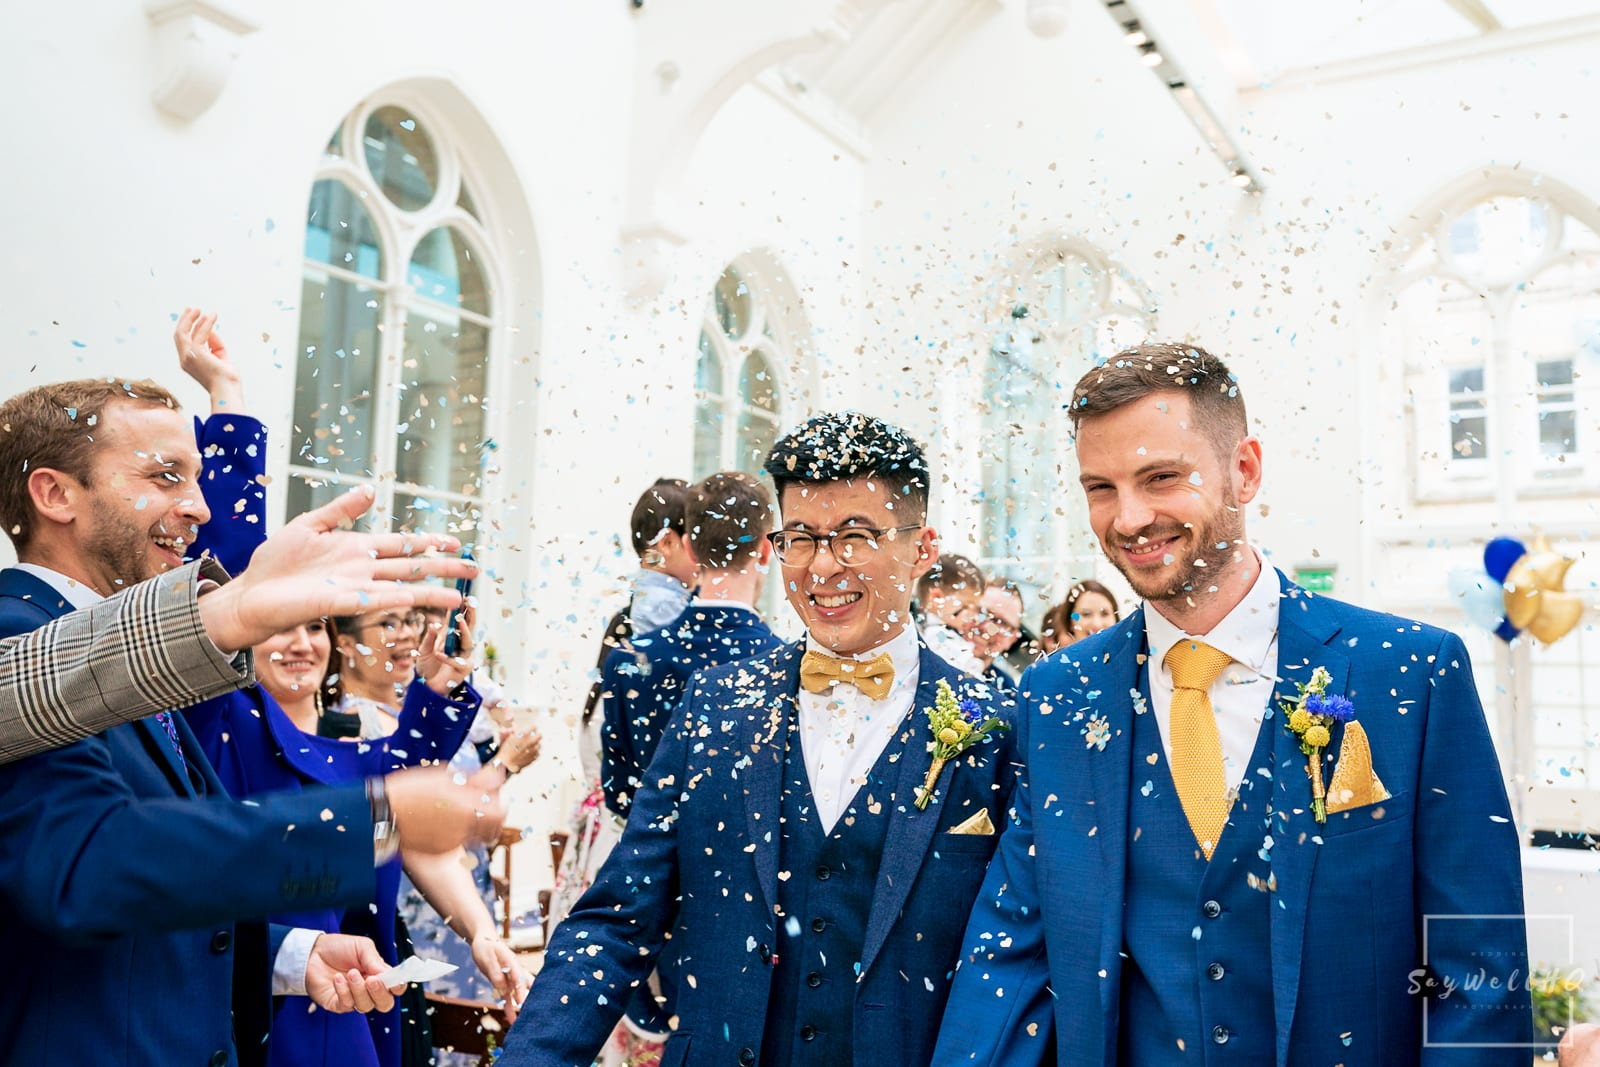 Nottingham Same sex wedding photographer - happy couple walking through the wedding confetti at a Nottingham wedding